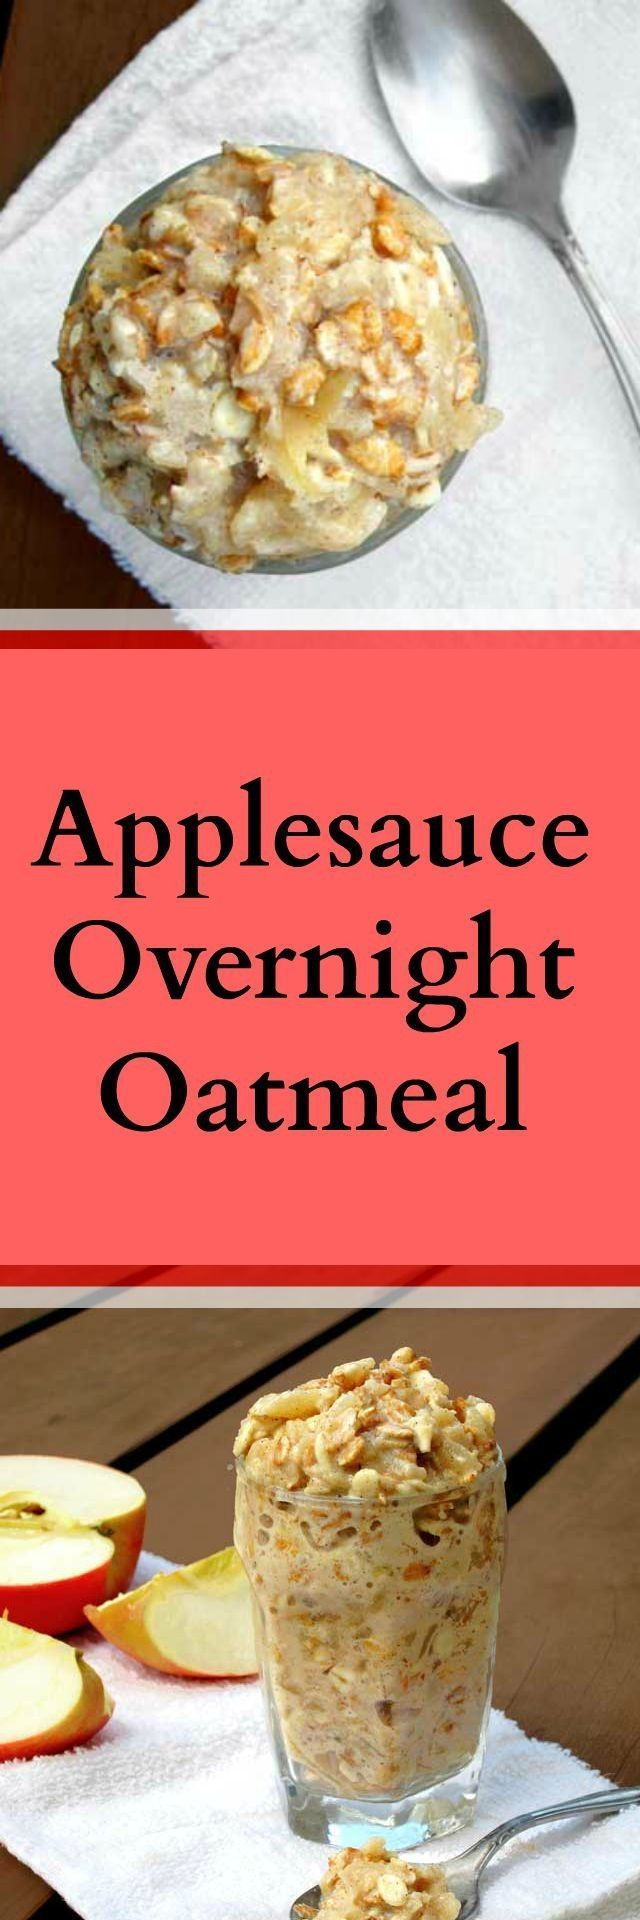 Overnight Oatmeal Applesauce overnight oatmeal recipe. Make breakfast the night before - and it's ready for you in the morning! Repin to save.Applesauce overnight oatmeal recipe. Make breakfast the night before - and it's ready for you in the morning! Repin to save.